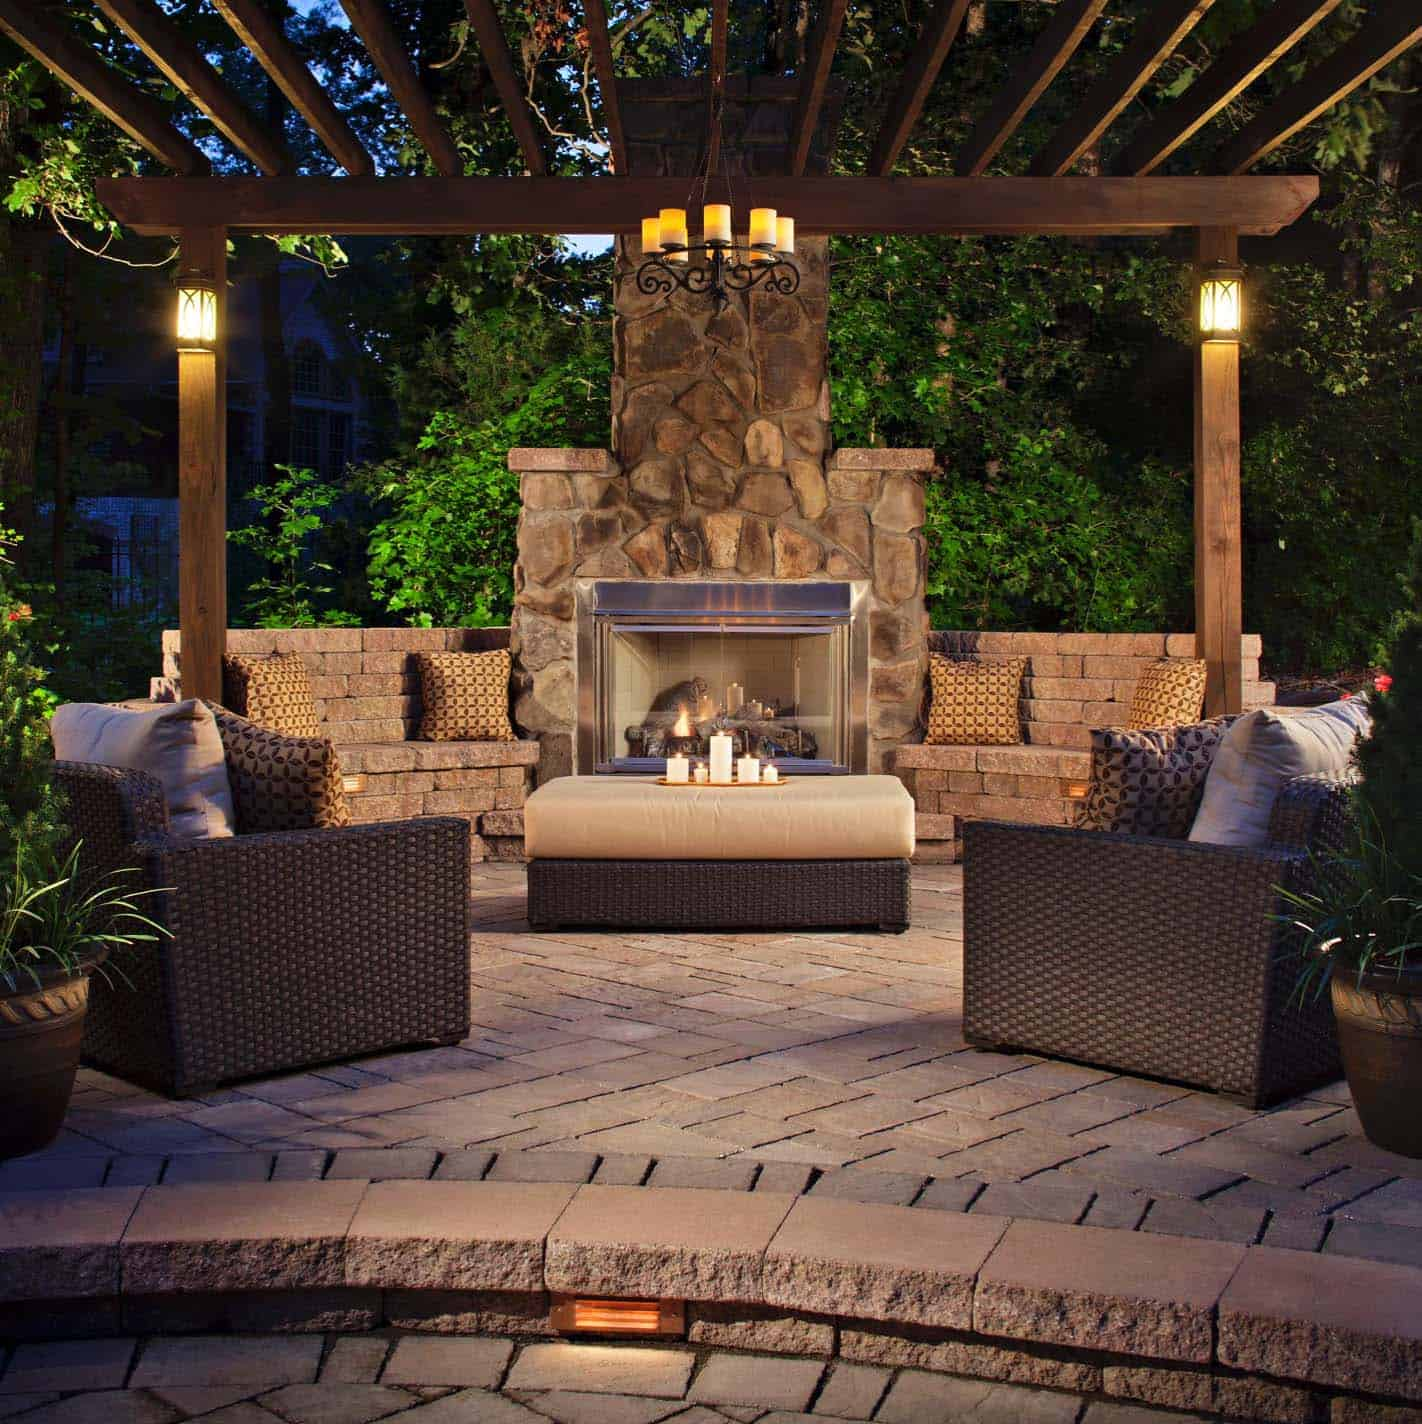 33 Fabulous Ideas For Creating Beautiful Outdoor Living Spaces on Garden Living Space id=35558